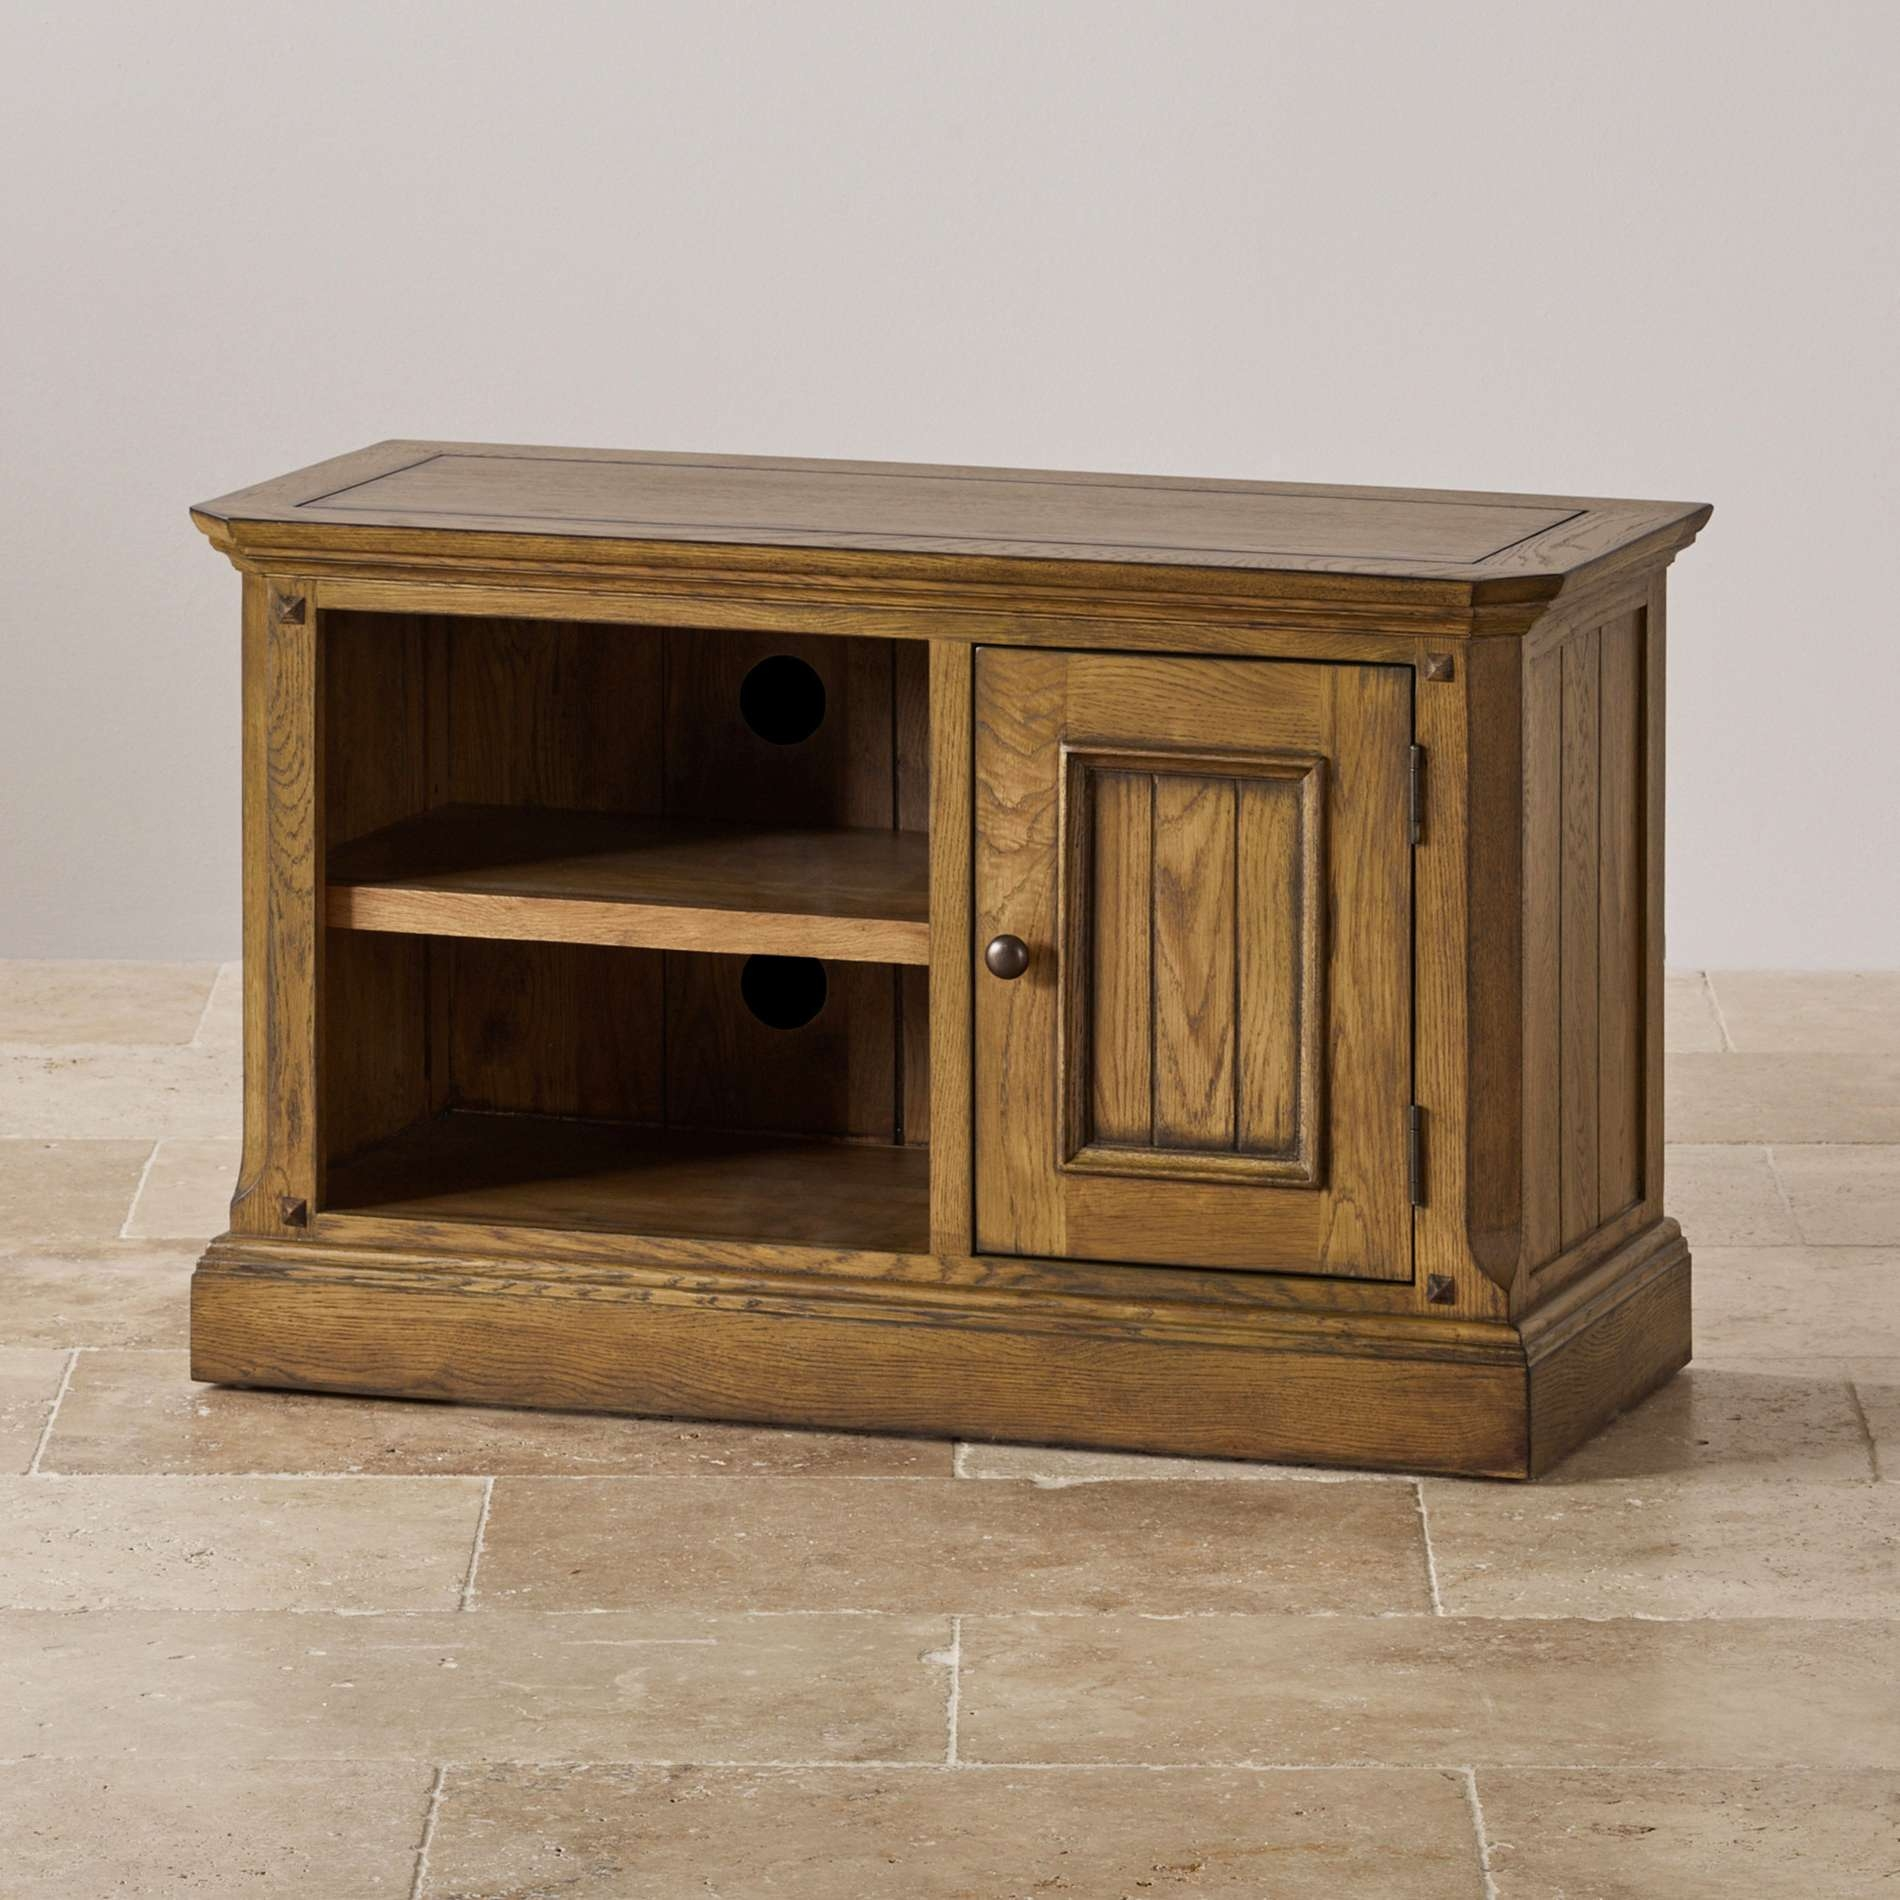 Manor House Small Tv Unit In Solid Oak | Oak Furniture Land For Small Oak Tv Cabinets (View 9 of 20)